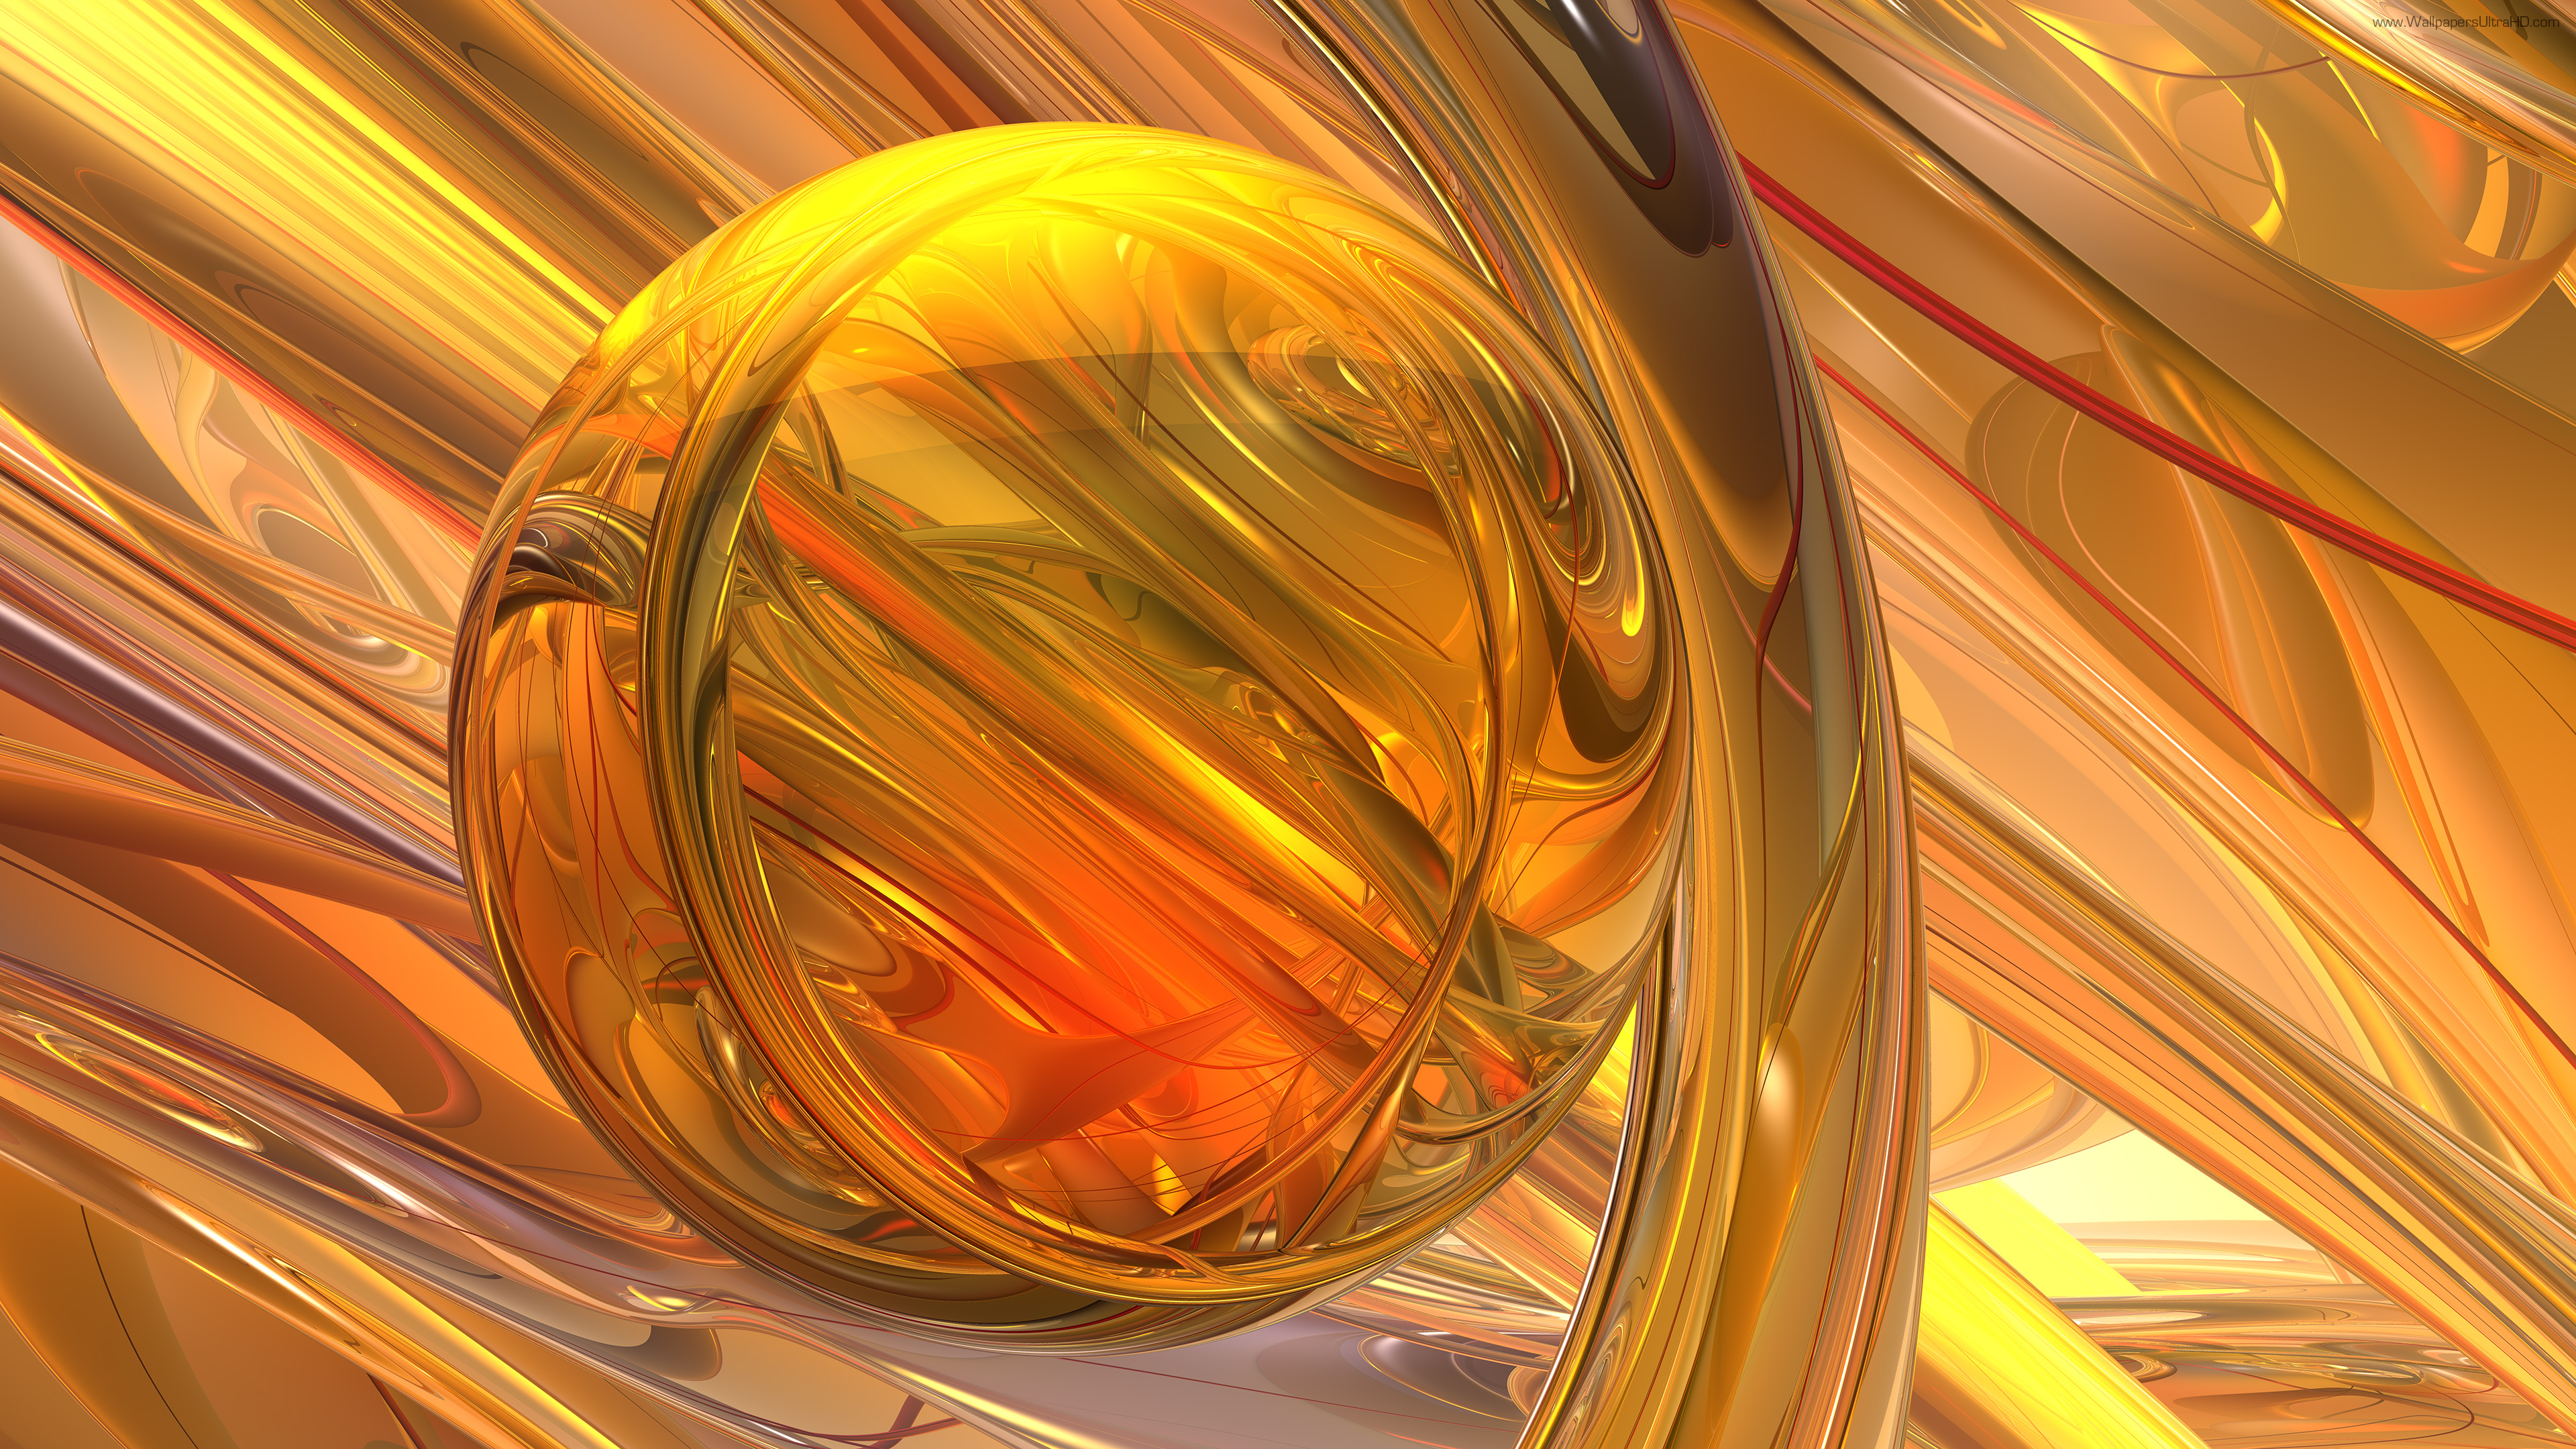 gold abstract wallpaper wch7i - photo #15